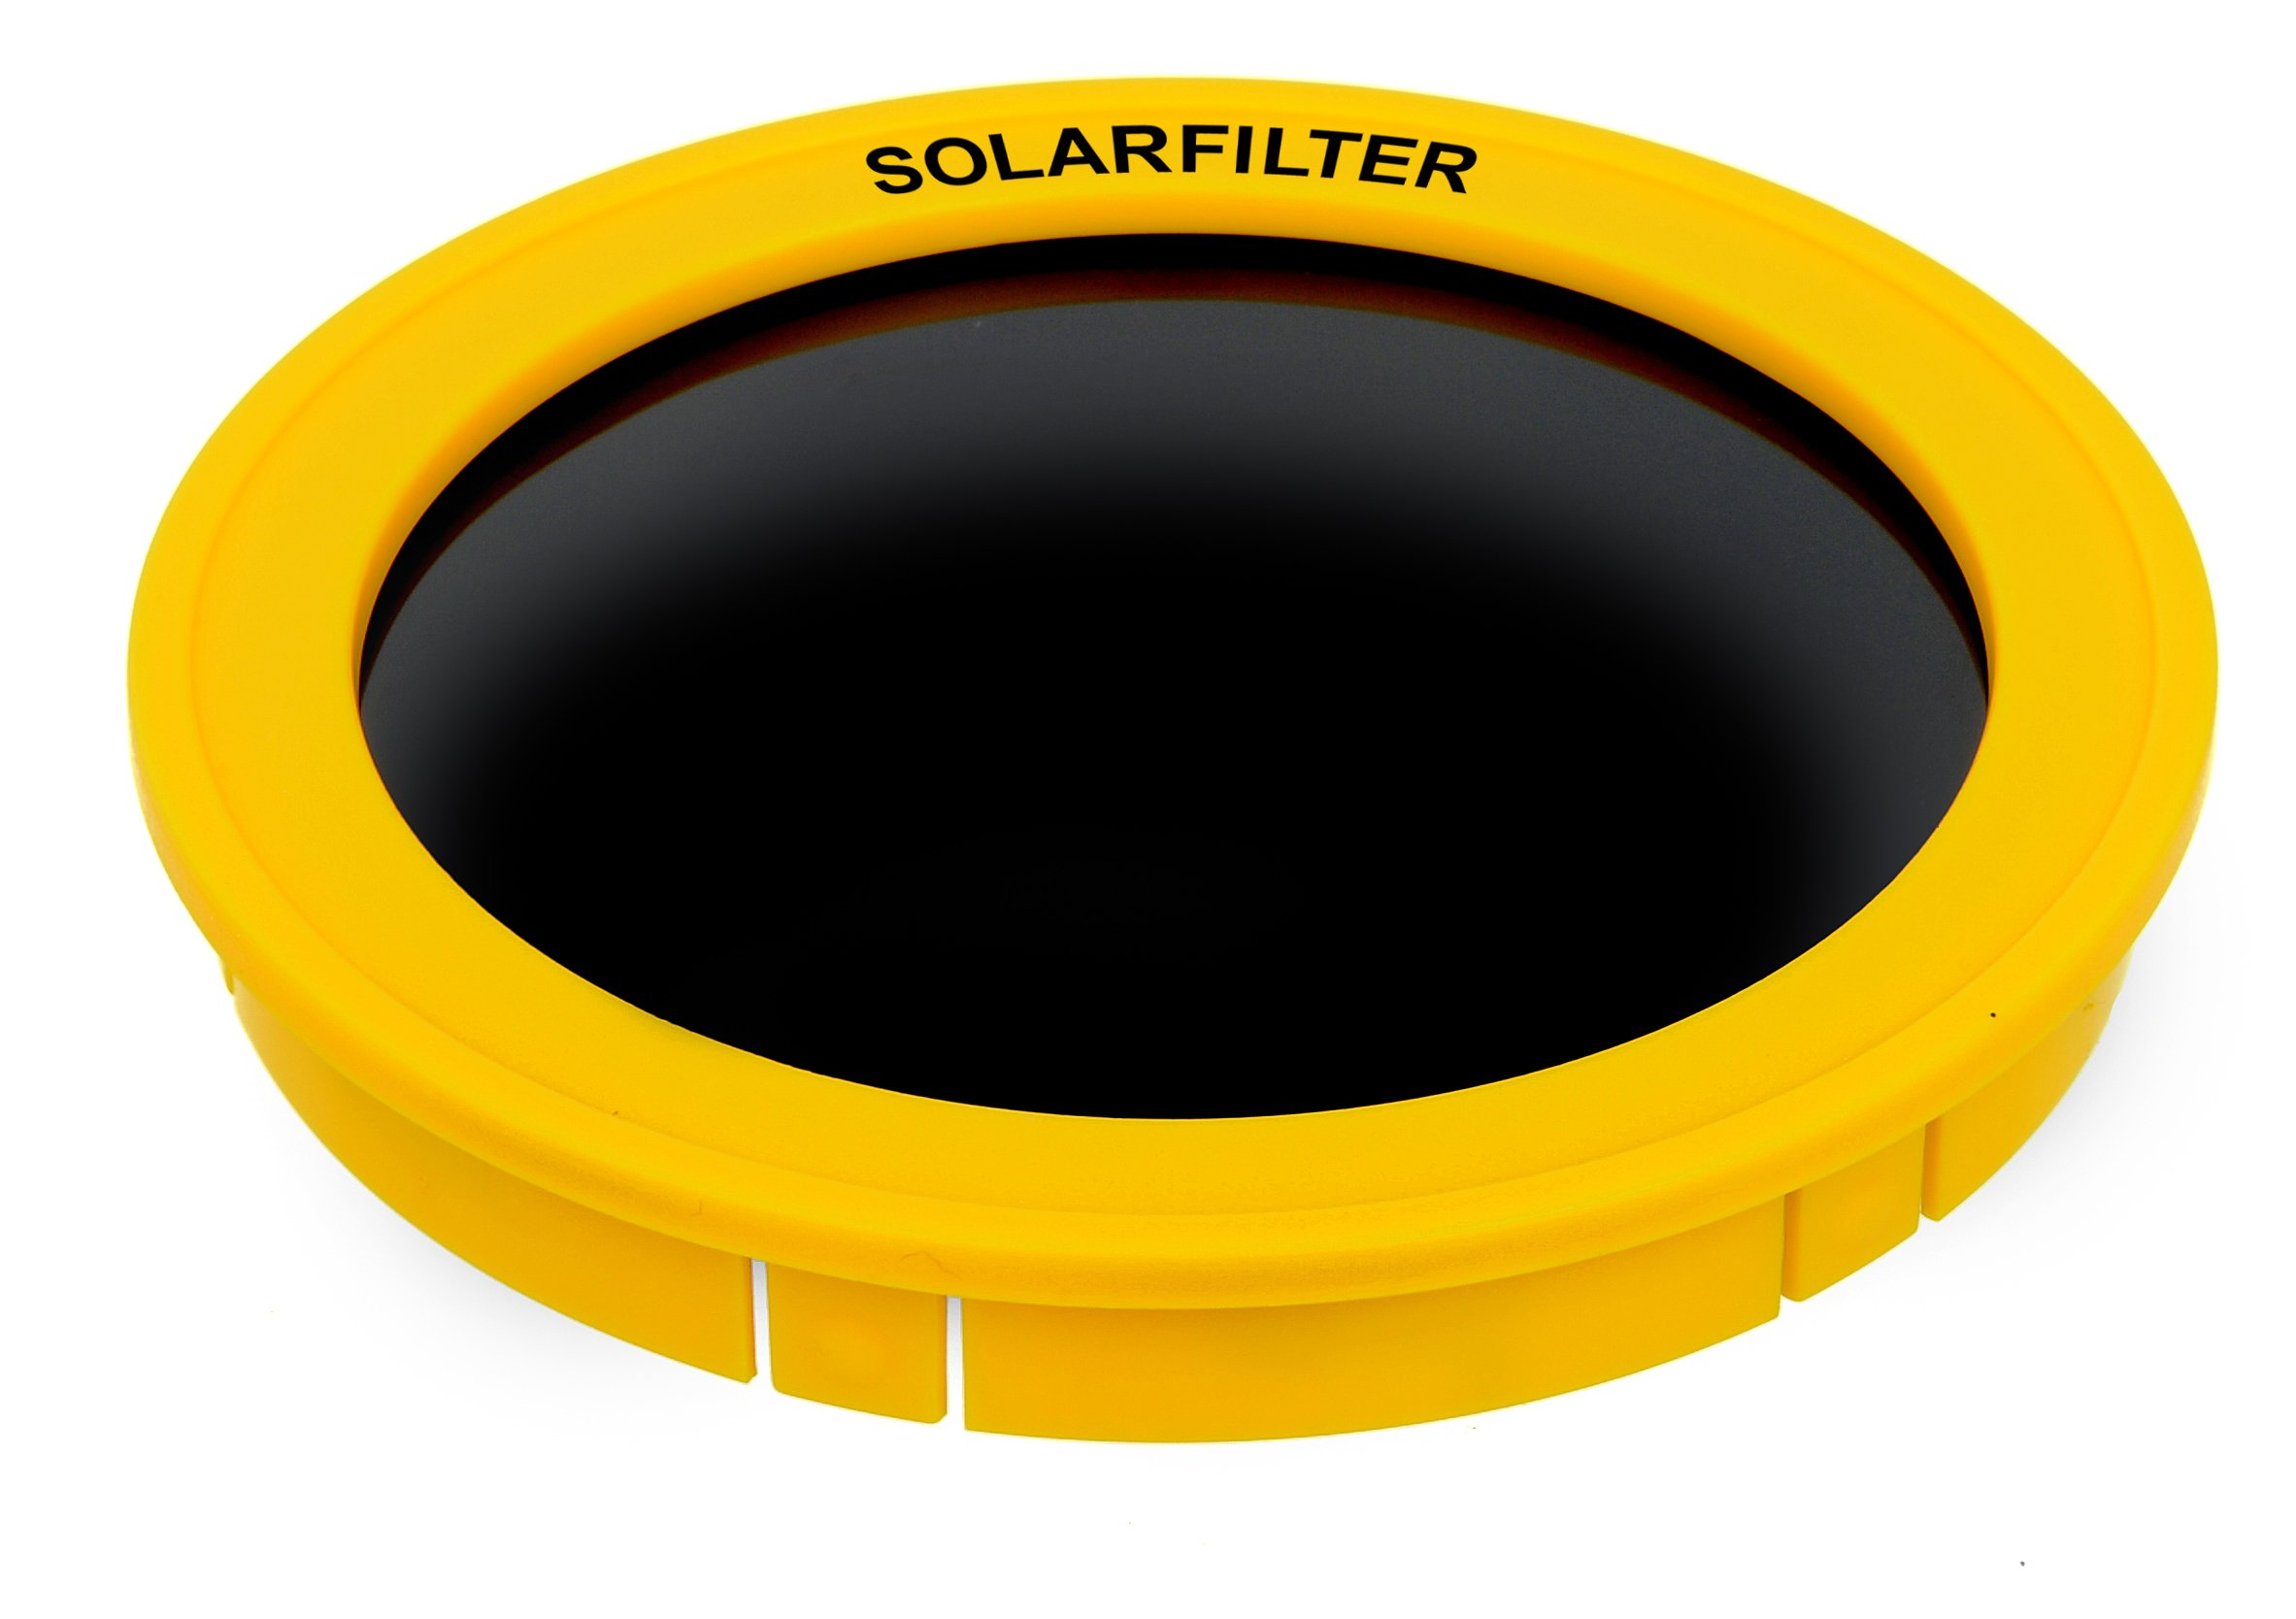 Bresser Telescope Solarix 76/350 with Solar Filter for sun and night observing